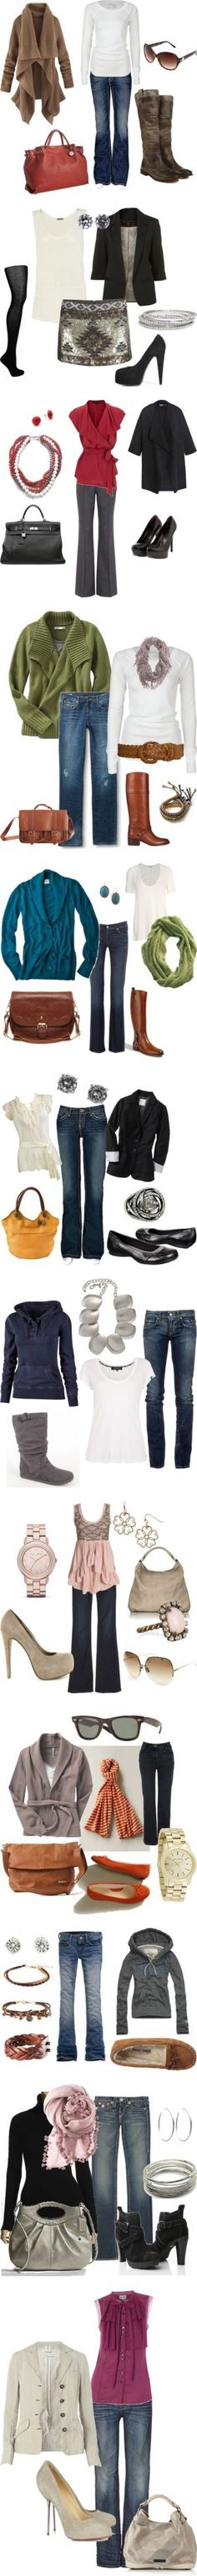 fall outfit ideas...would wear most all of these...